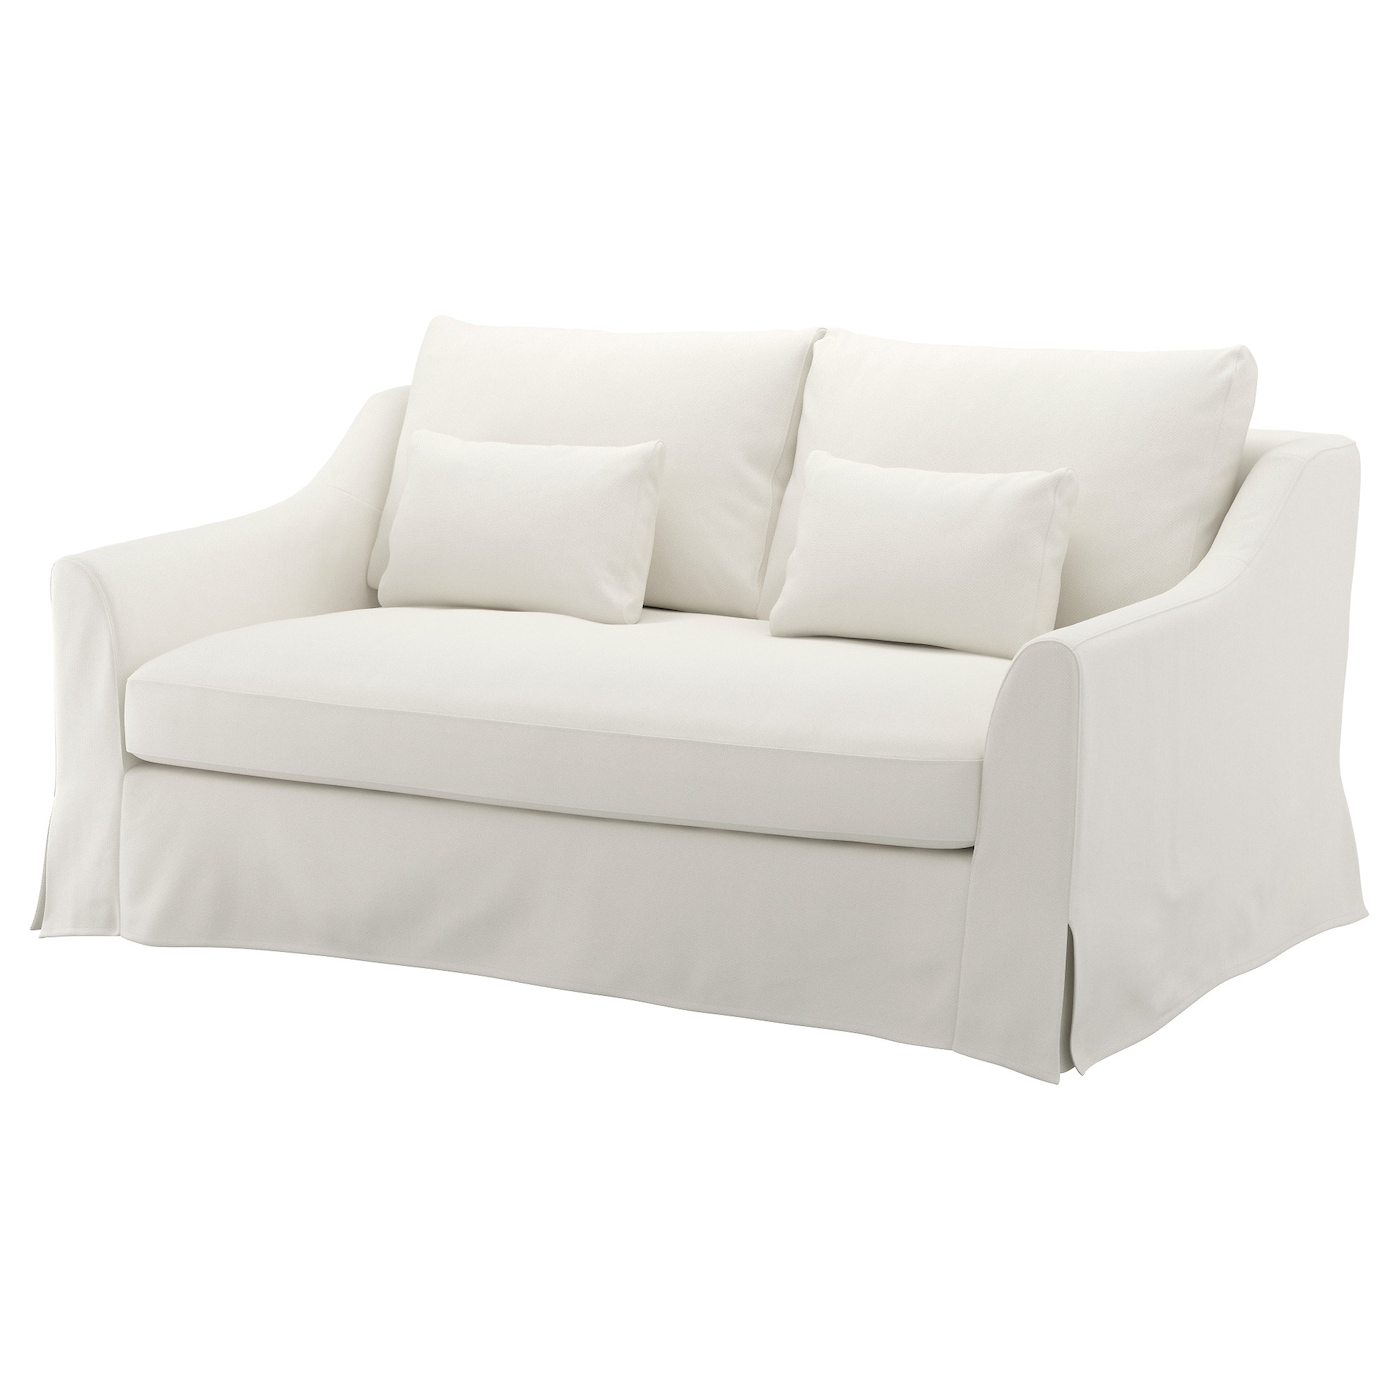 f rl v 2 seat sofa flodafors white ikea. Black Bedroom Furniture Sets. Home Design Ideas